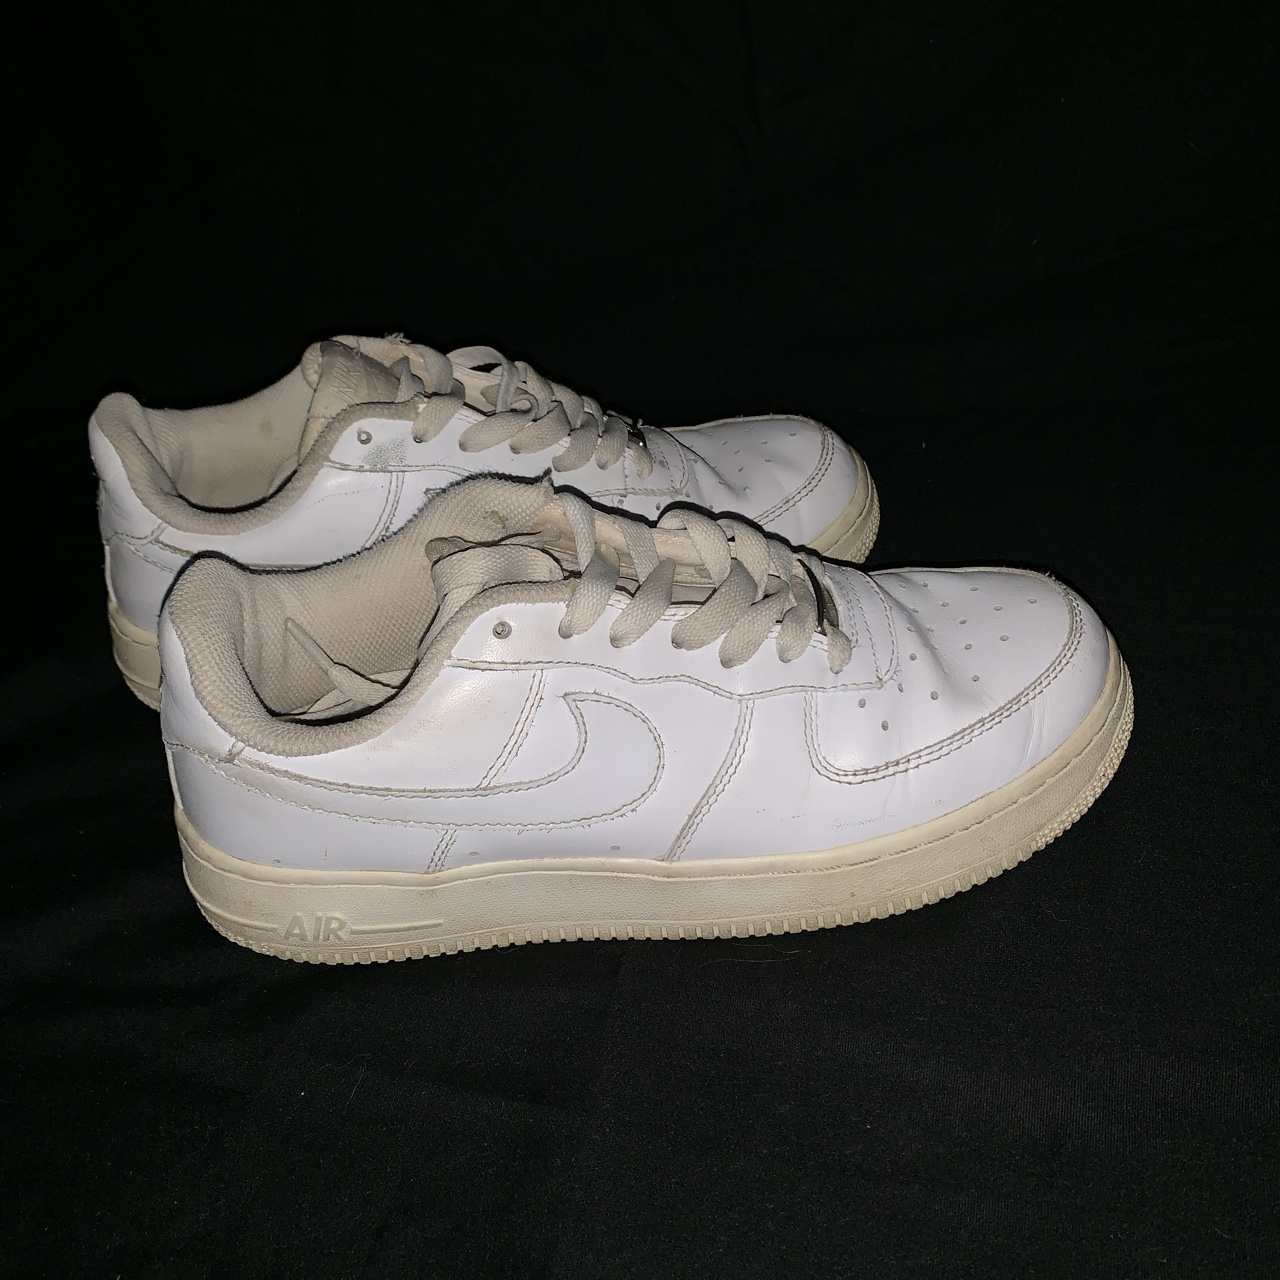 air force ones size 7